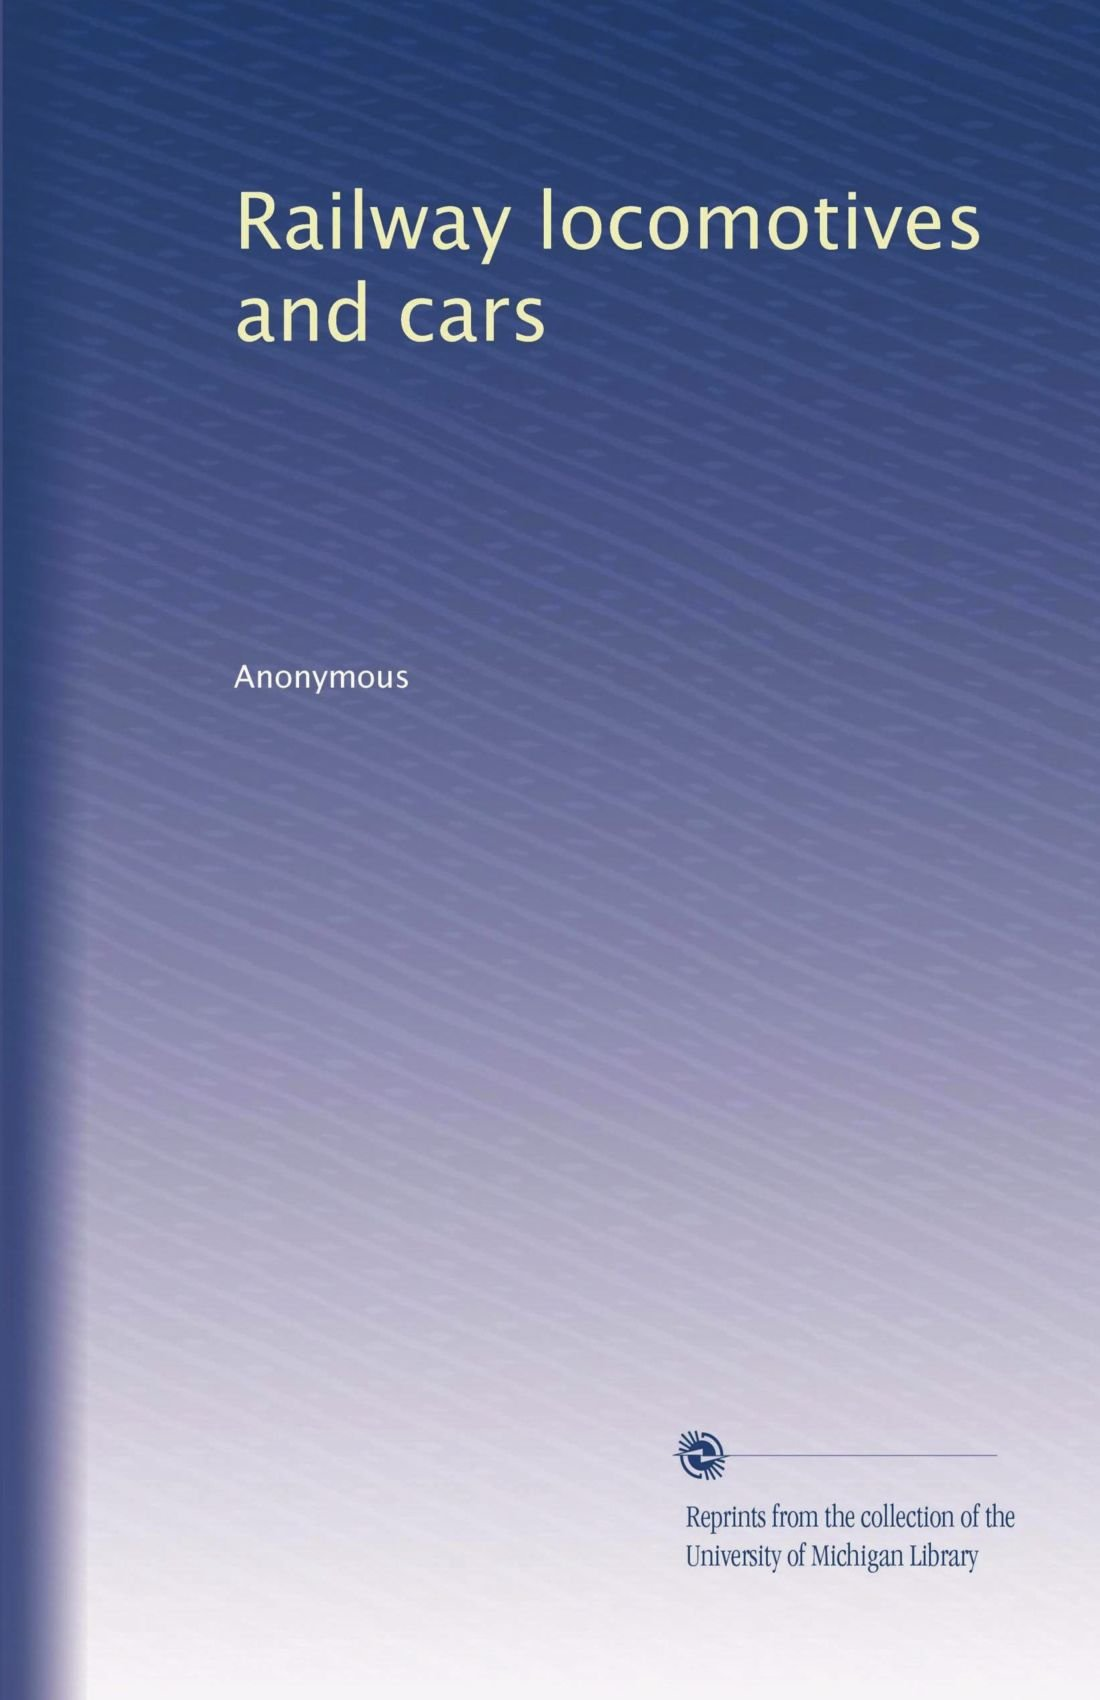 Download Railway locomotives and cars (Volume 8) pdf